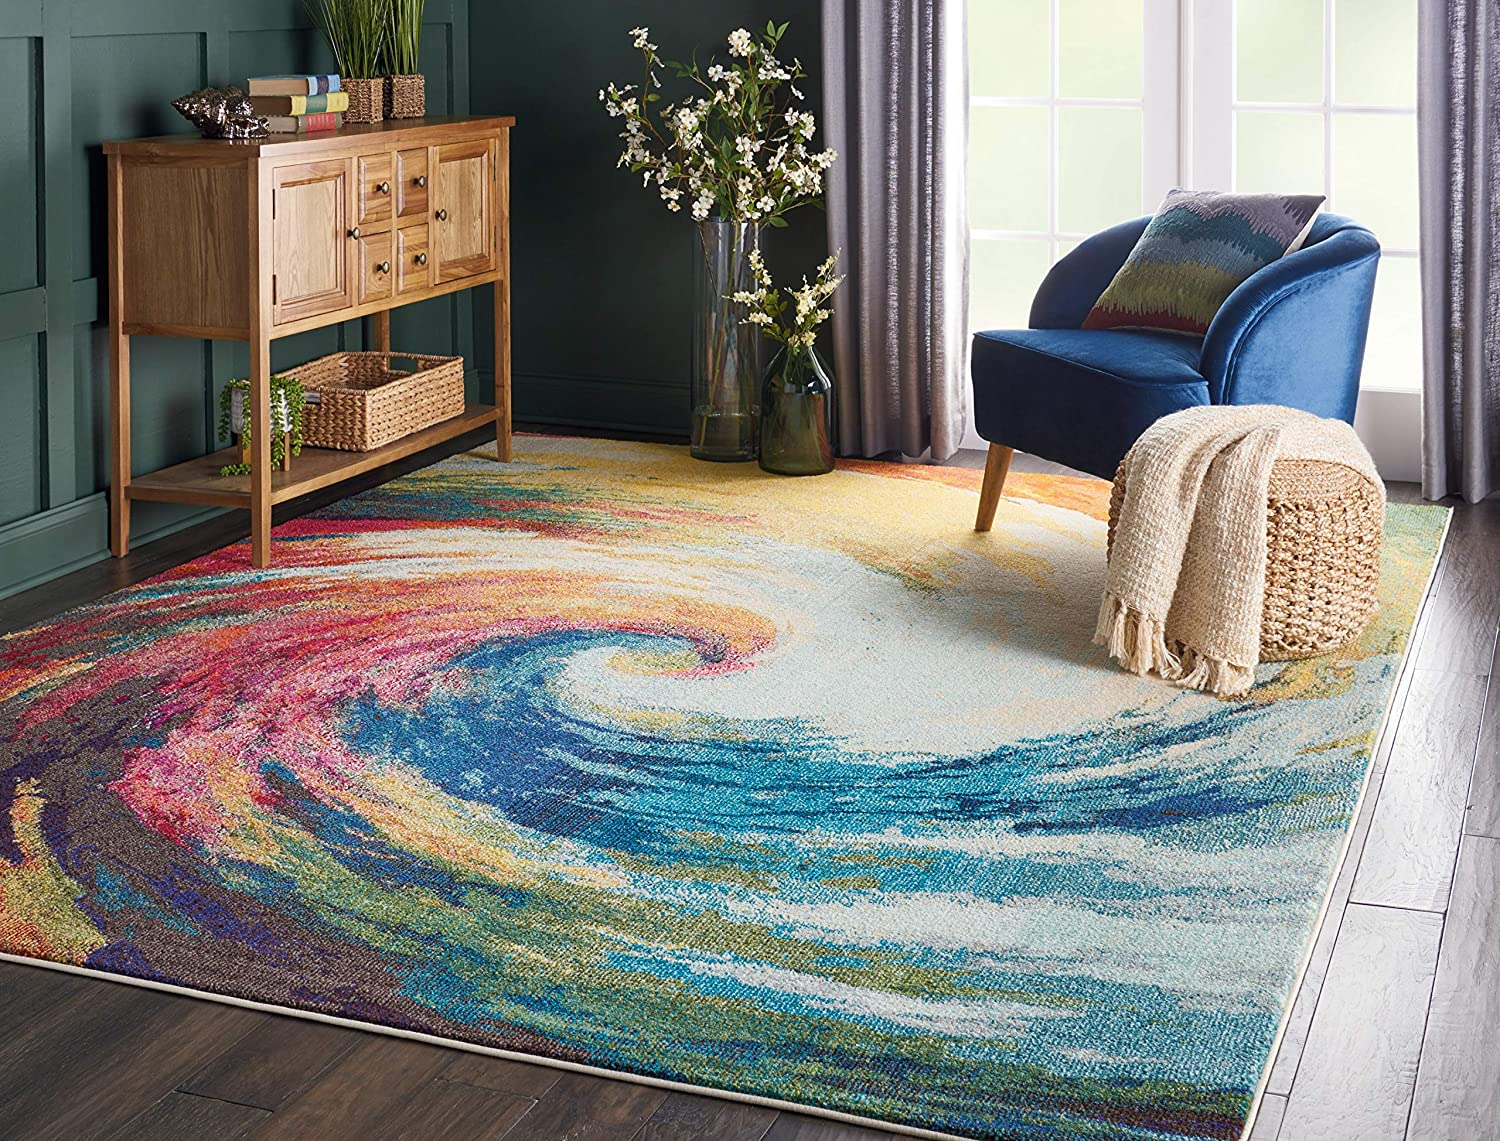 """Nourison Celestial Modern Bohemian Wave Multicolored Area Rug 7 feet 10 Inches by 10 Feet 6 Inches, 7'10"""" x 10'6"""""""